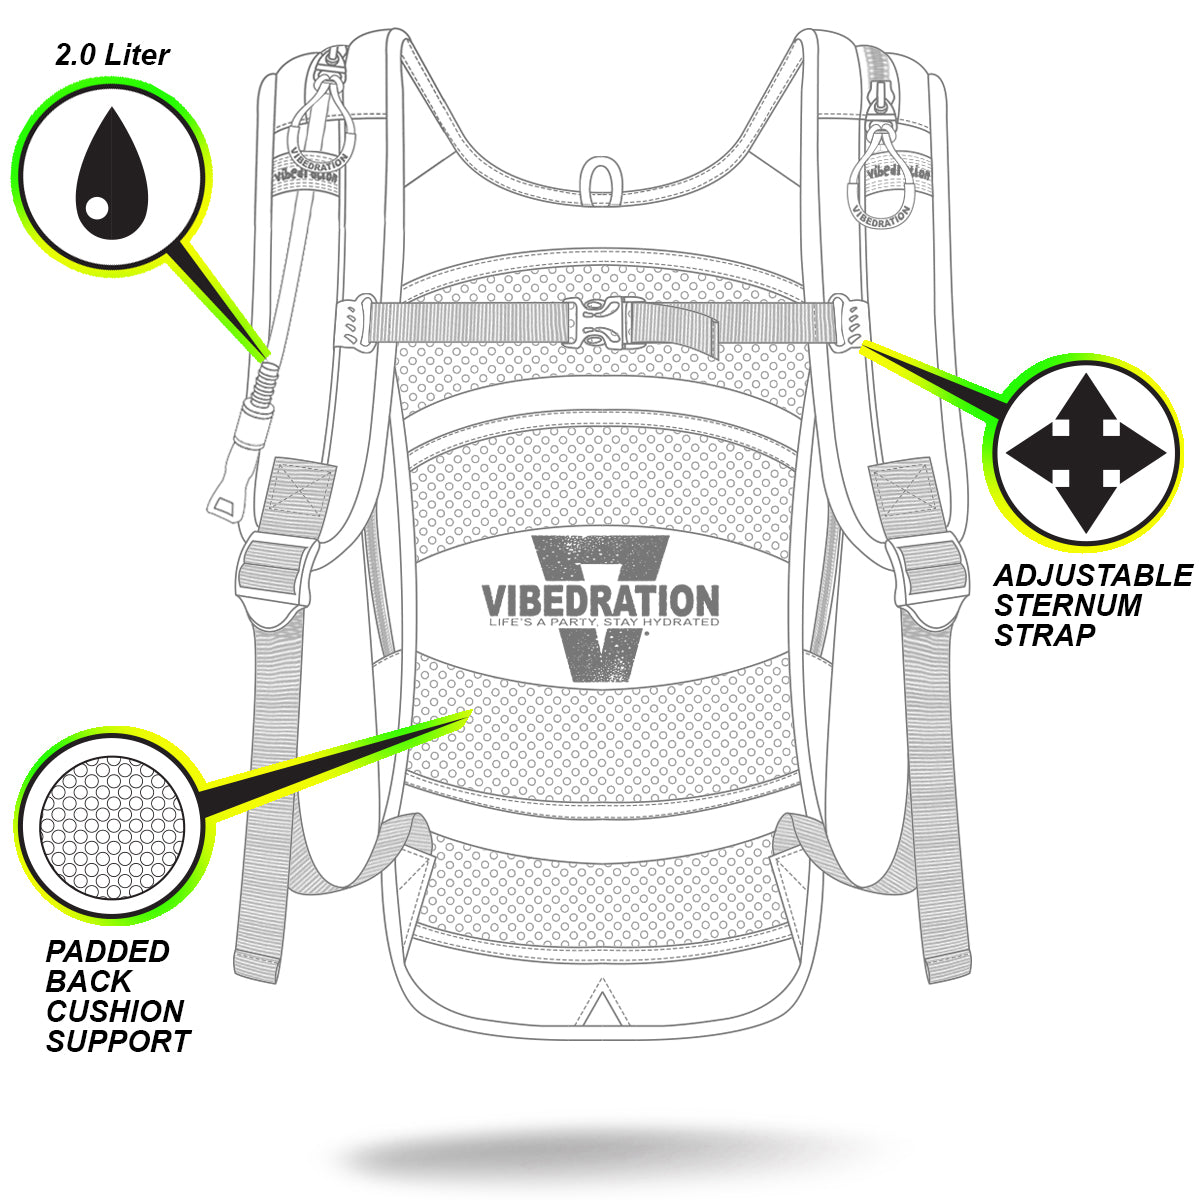 VIP 2.0L Description Image of Festival Hydration Pack